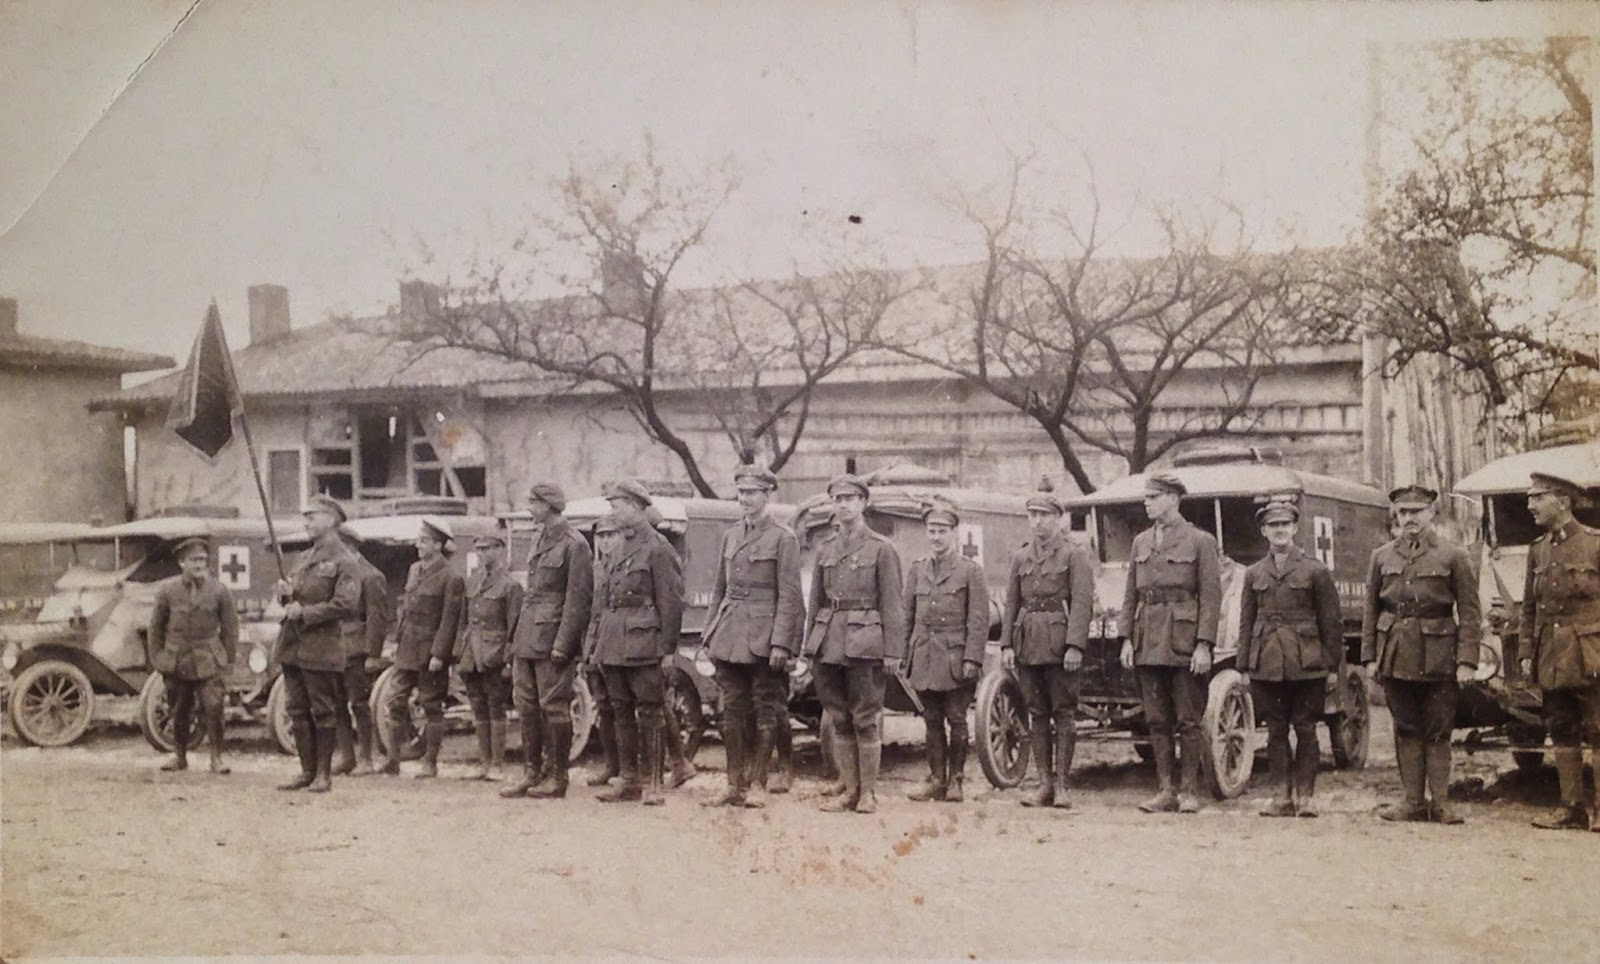 A photograph showing a line of men in uniform in front of ambulances.